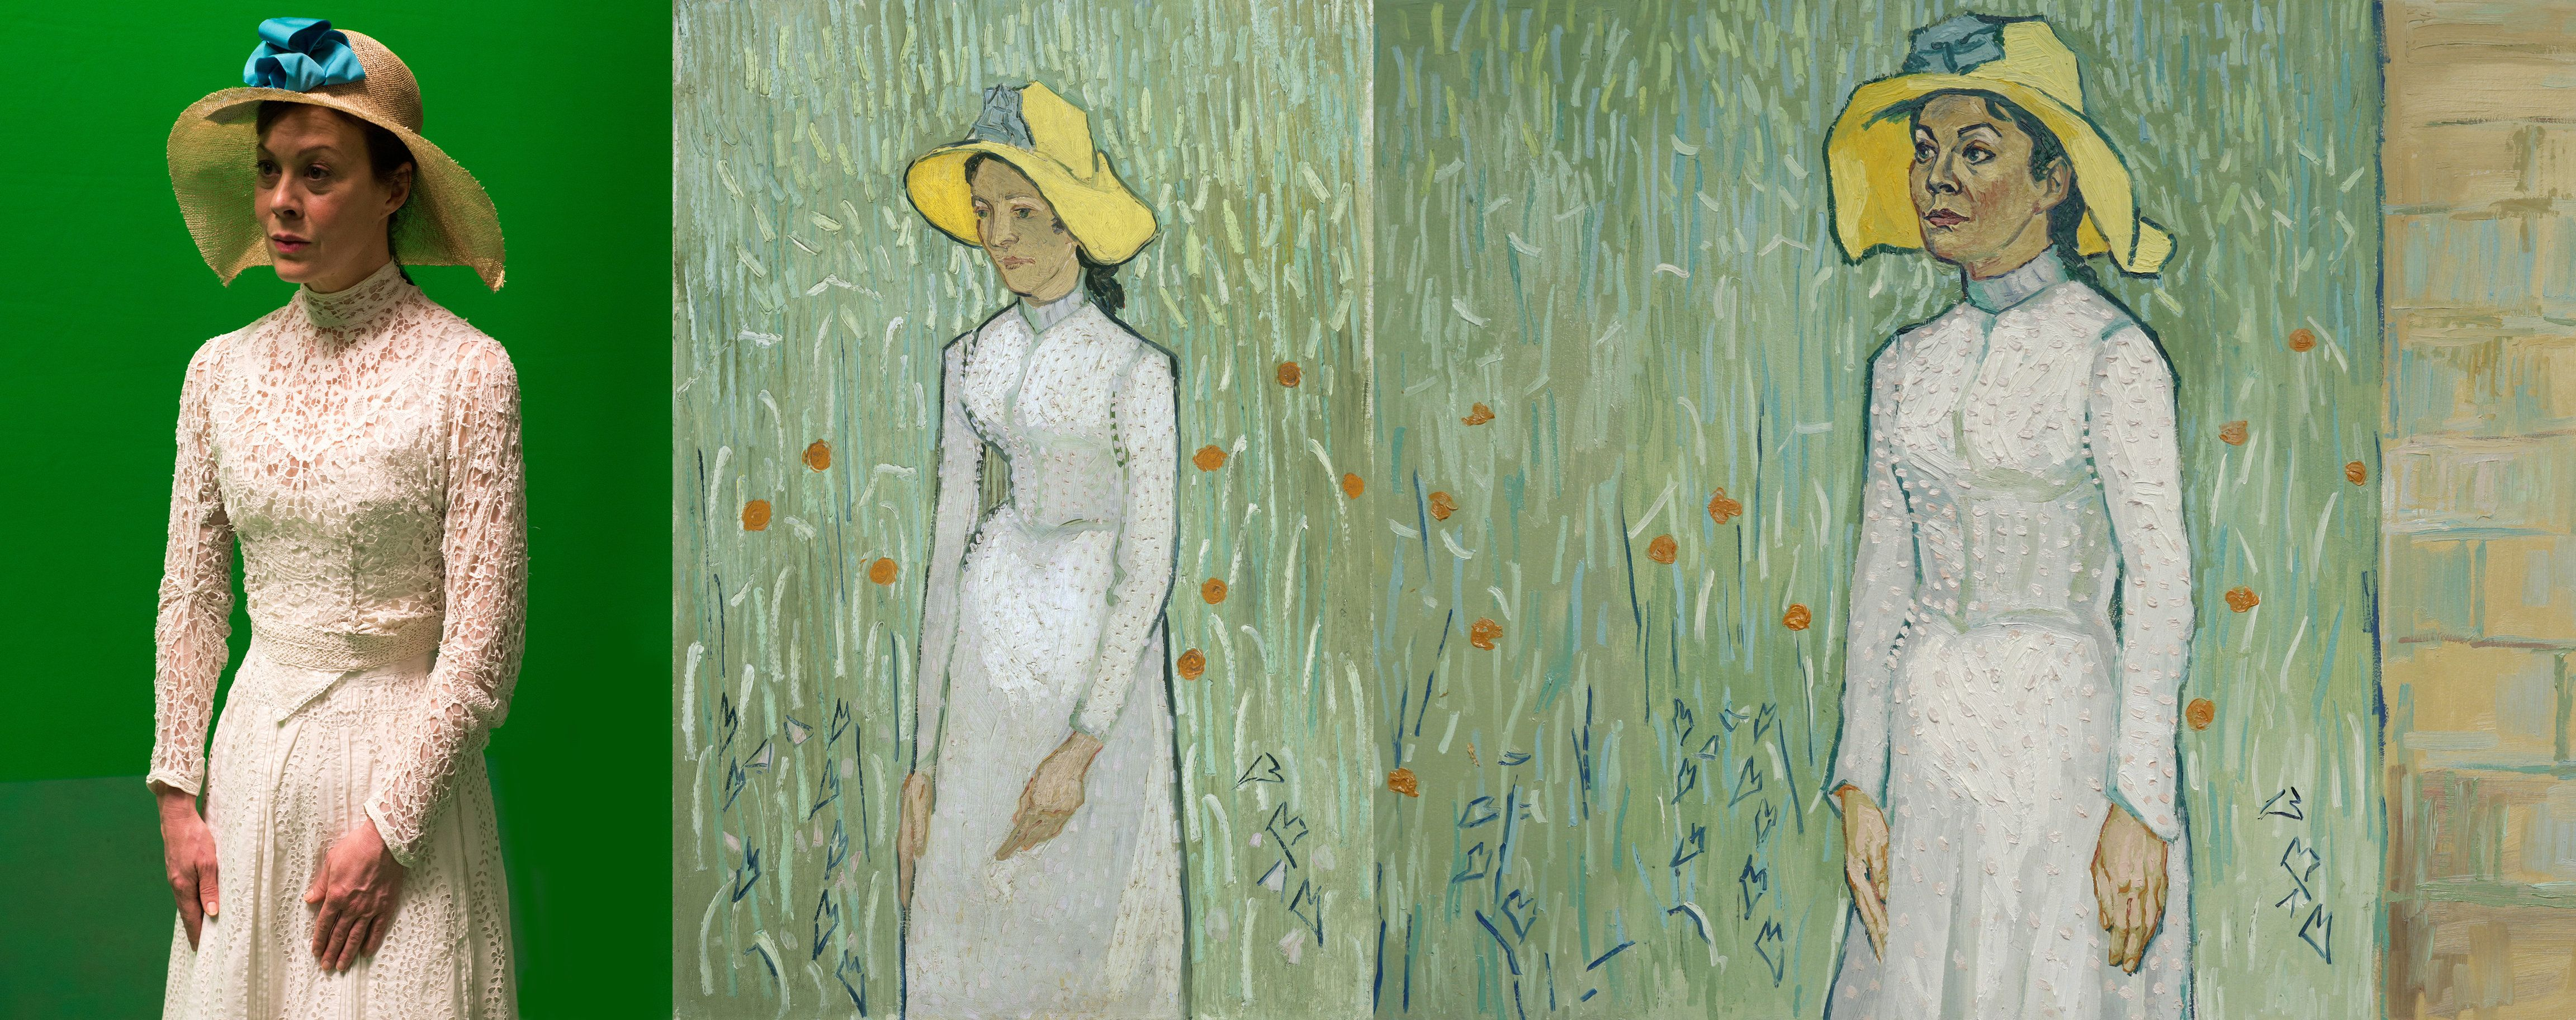 Watch Actors Transform Into Living Van Gogh Paintings Before Your Eyes images 4